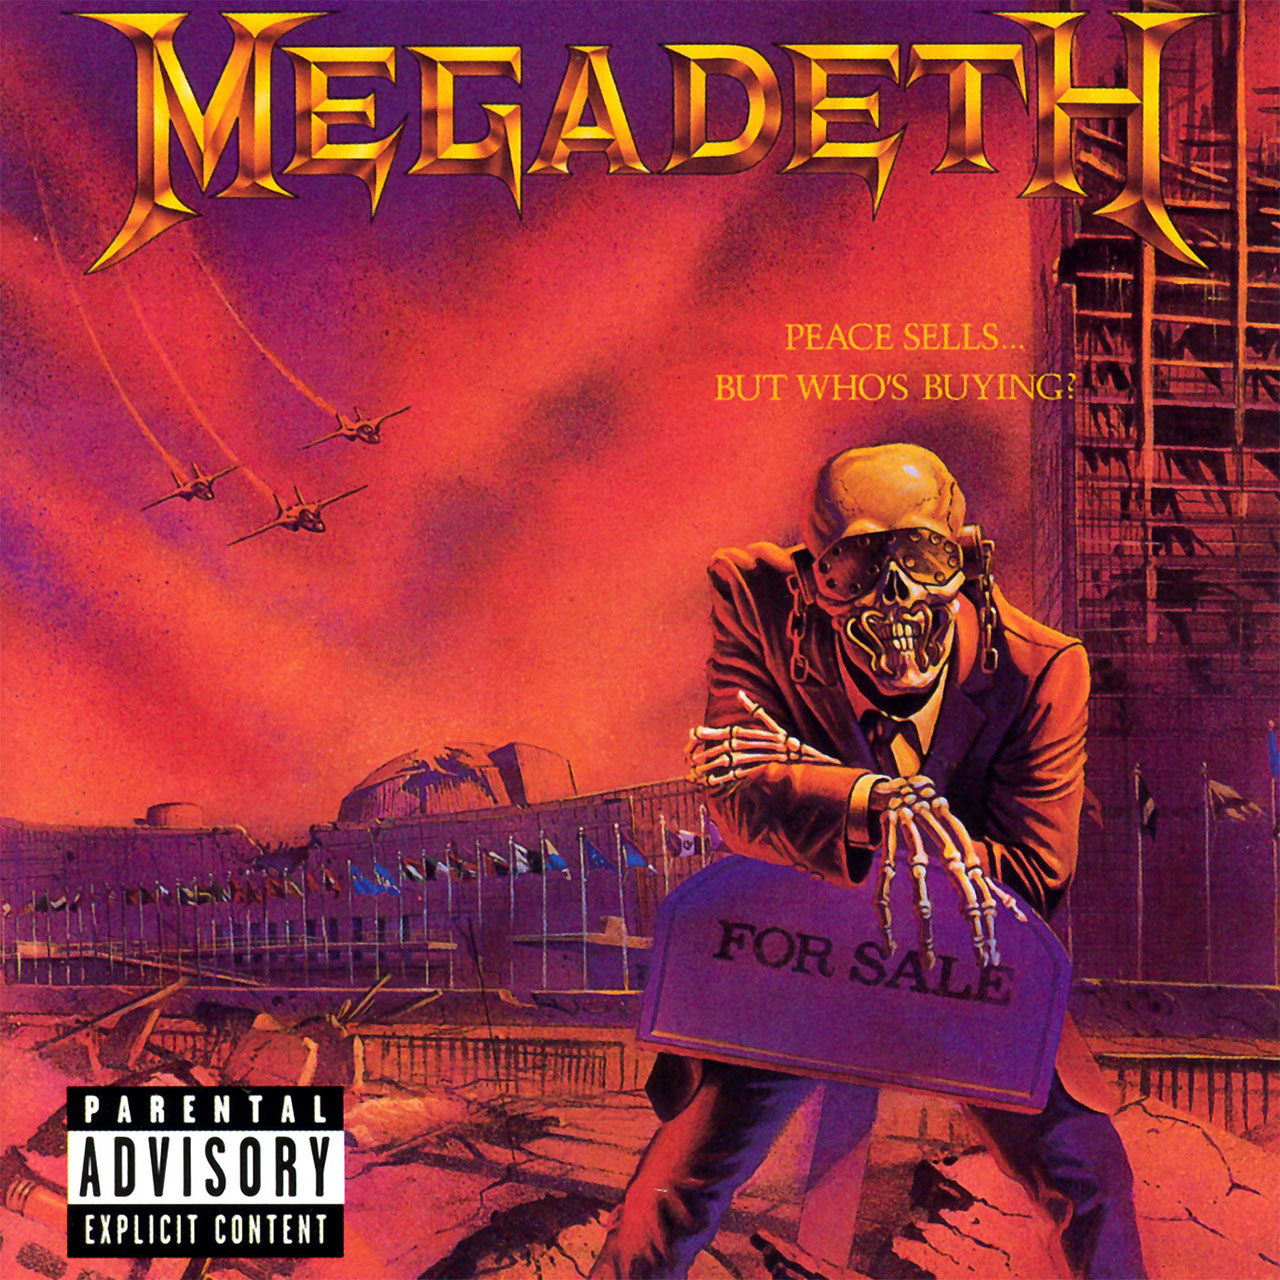 Megadeth - Peace Sells... But Who's Buying? (2004 Reissue) (CD)